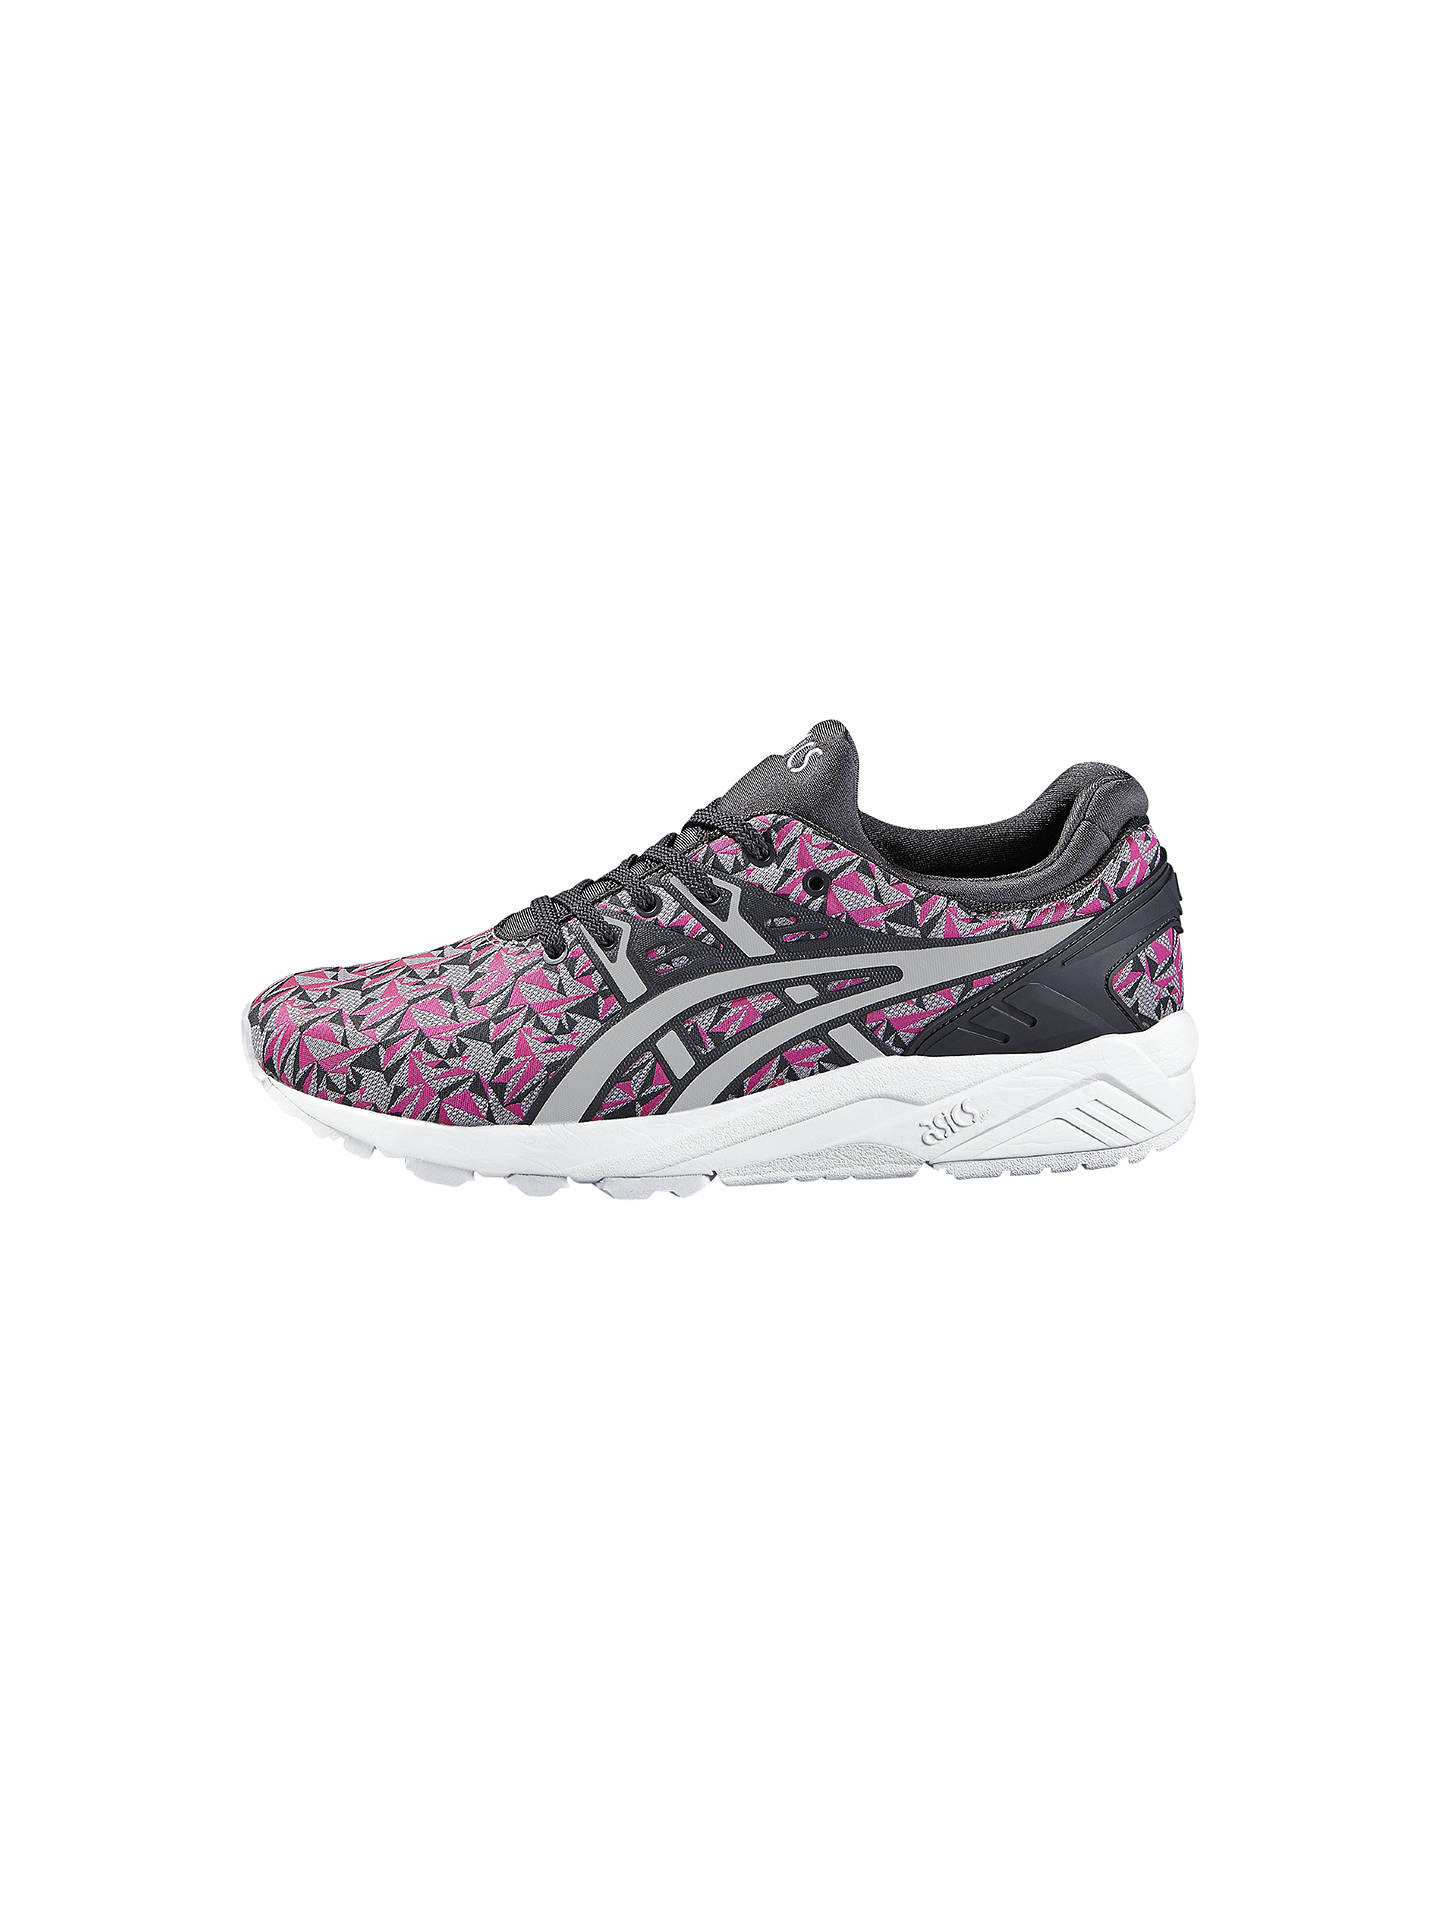 asics women trainers pink